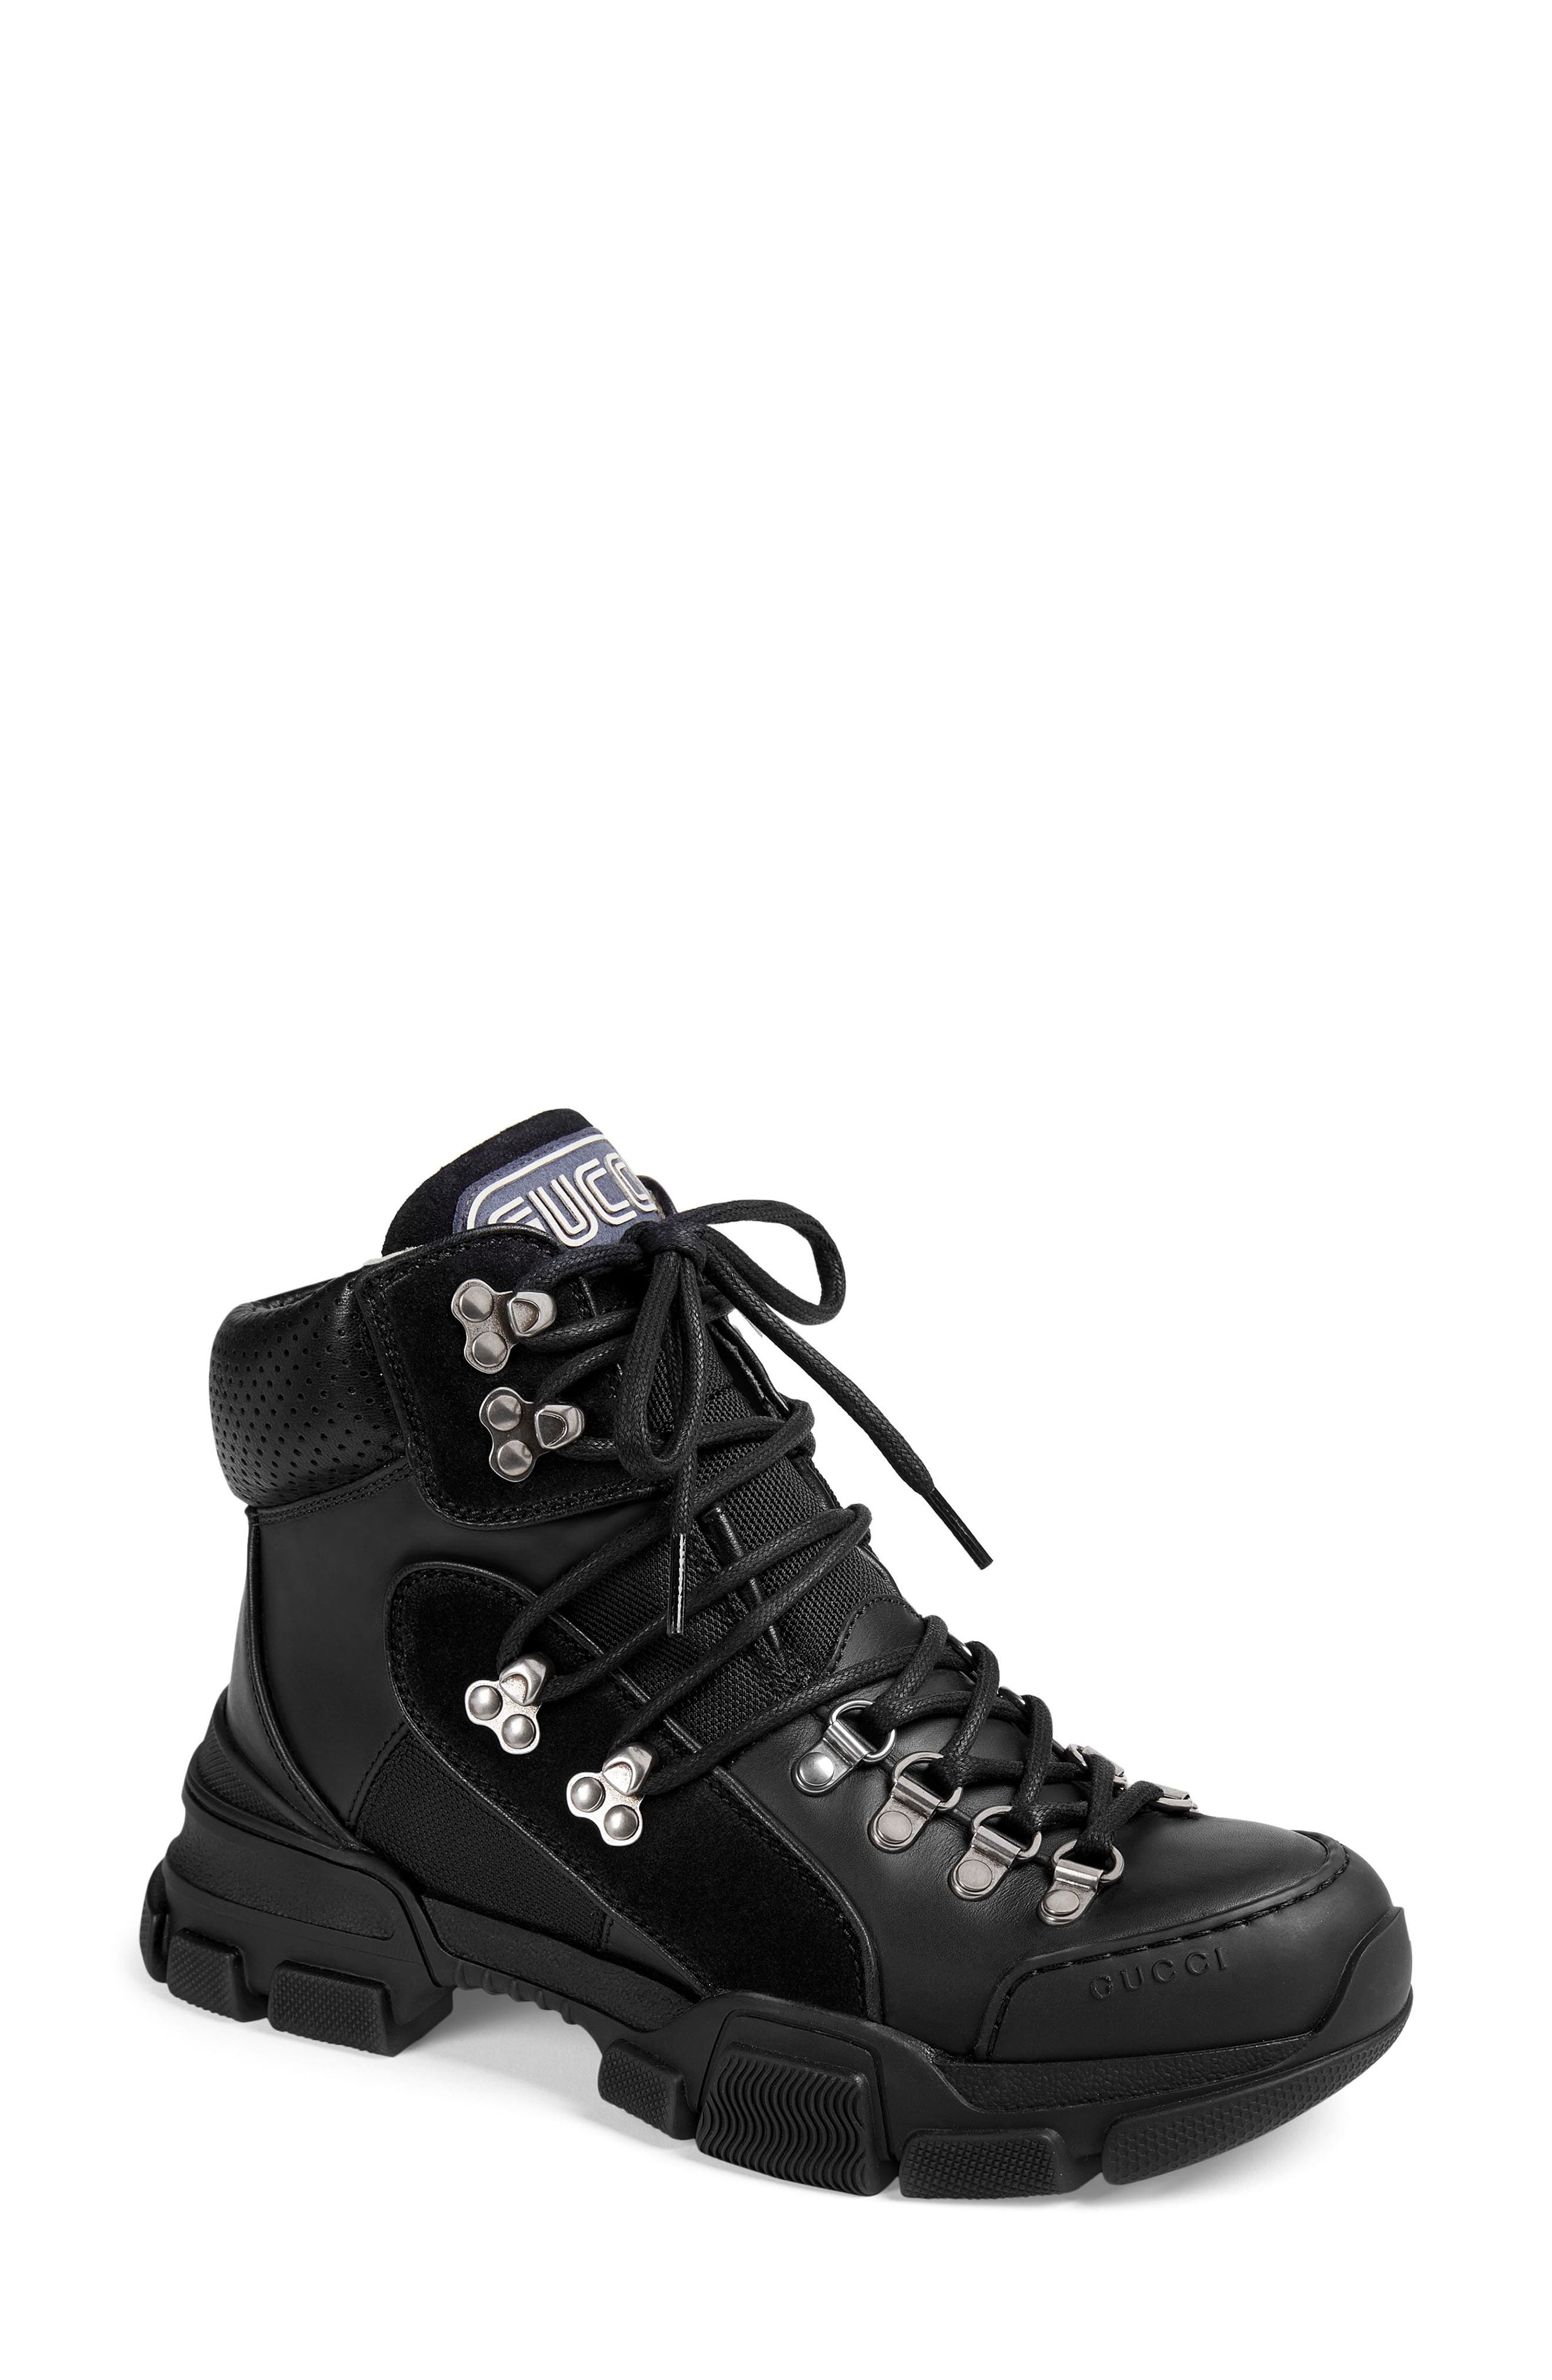 GUCCI Lace-Up Boot, Main, color, BLACK